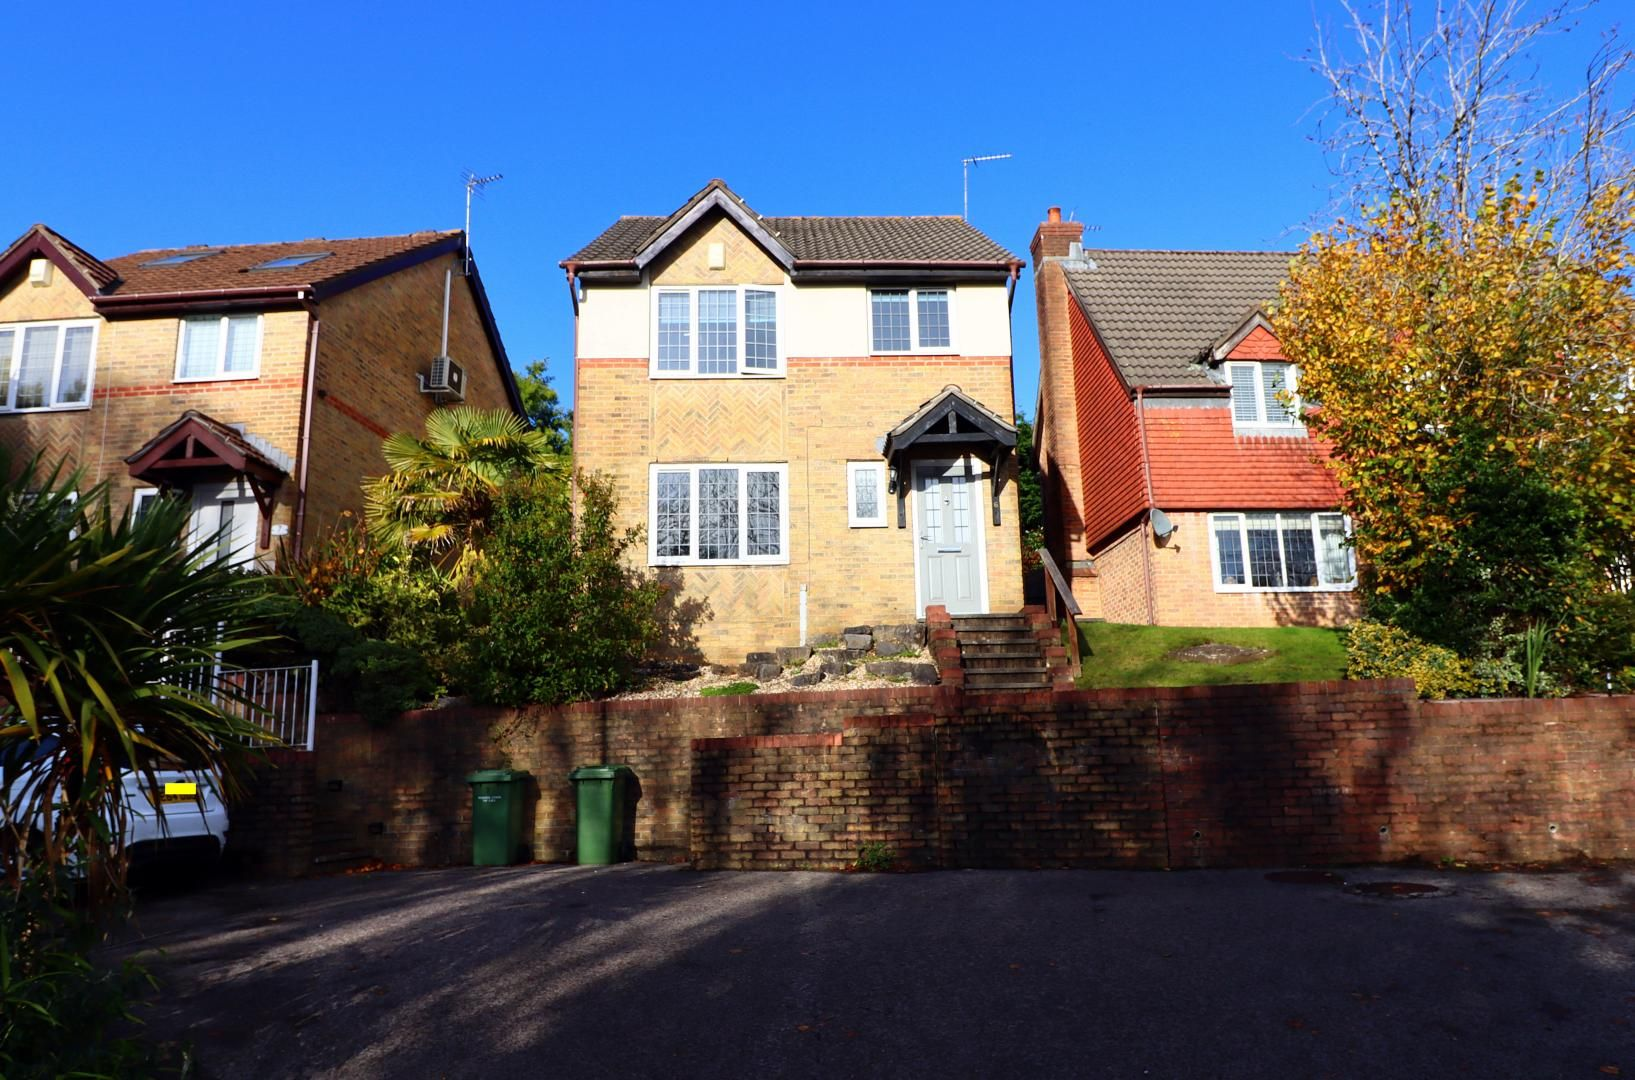 3 bed house for sale in Heol Isaf Hendy, CF72